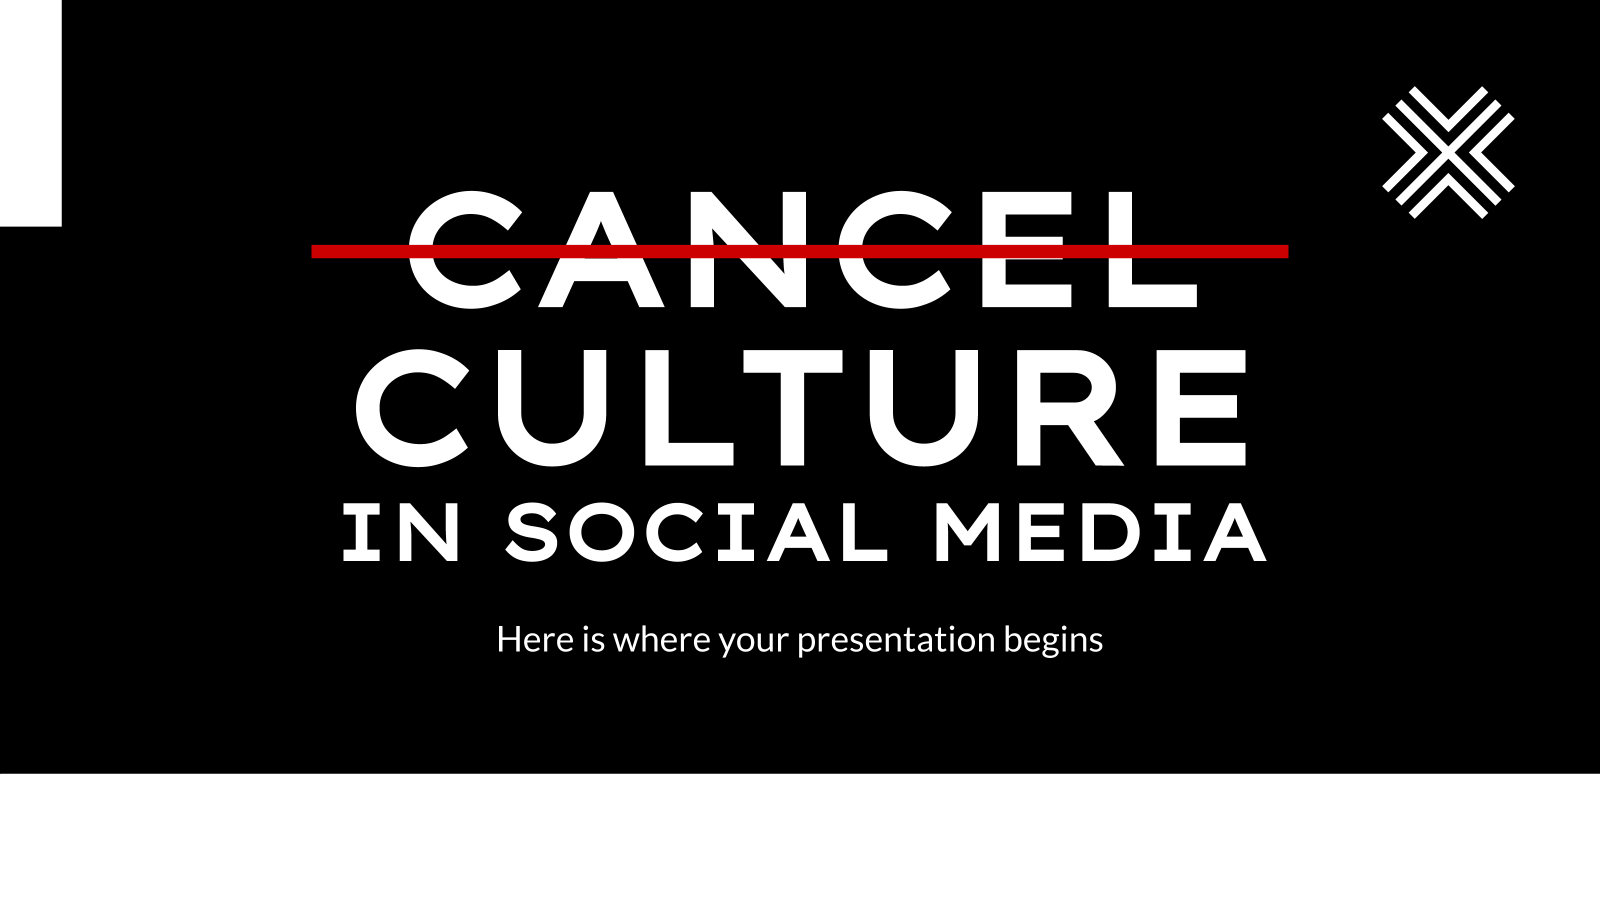 Cancel Culture in Social Media presentation template